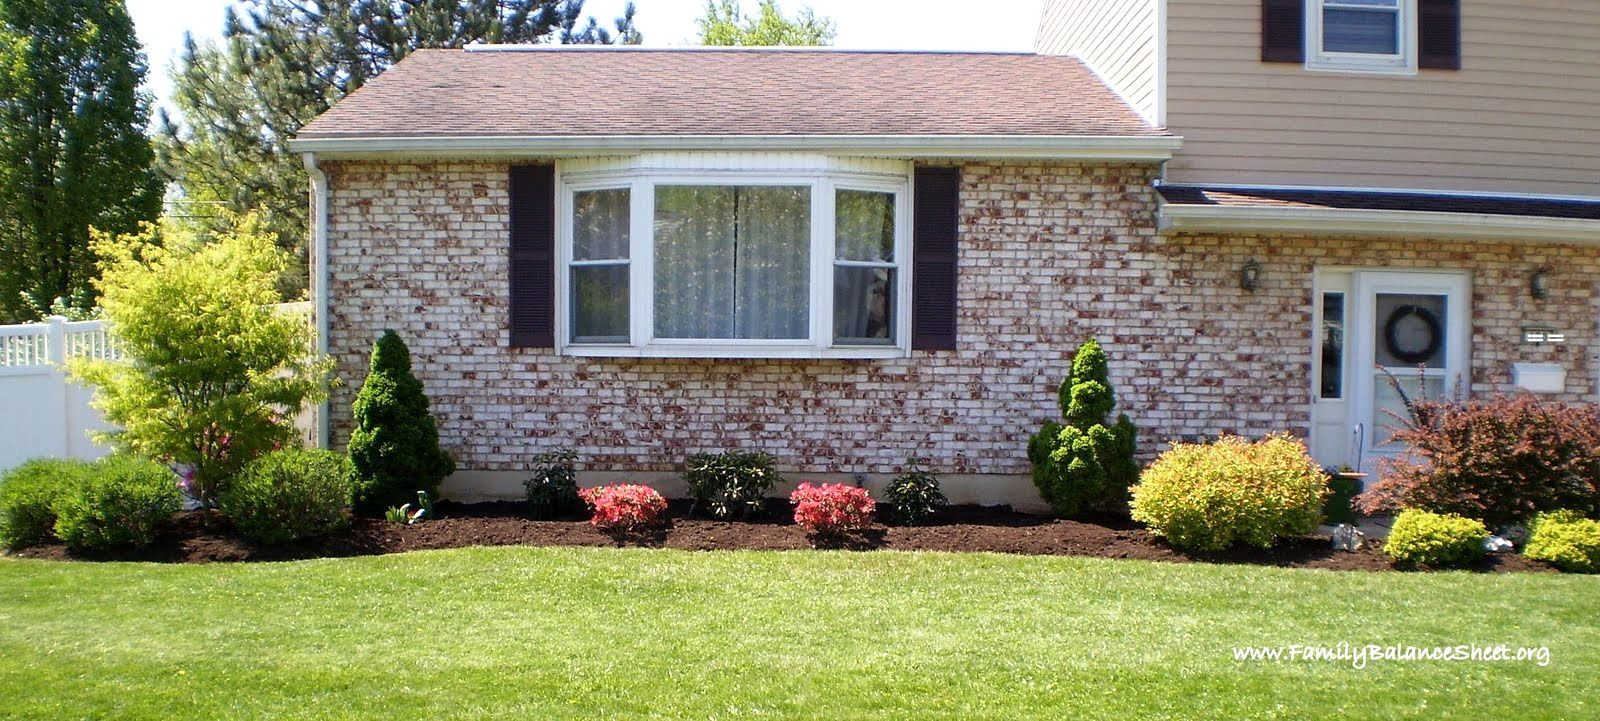 Landscaping ideas front yard ranch style home front yard for Front lawn garden design